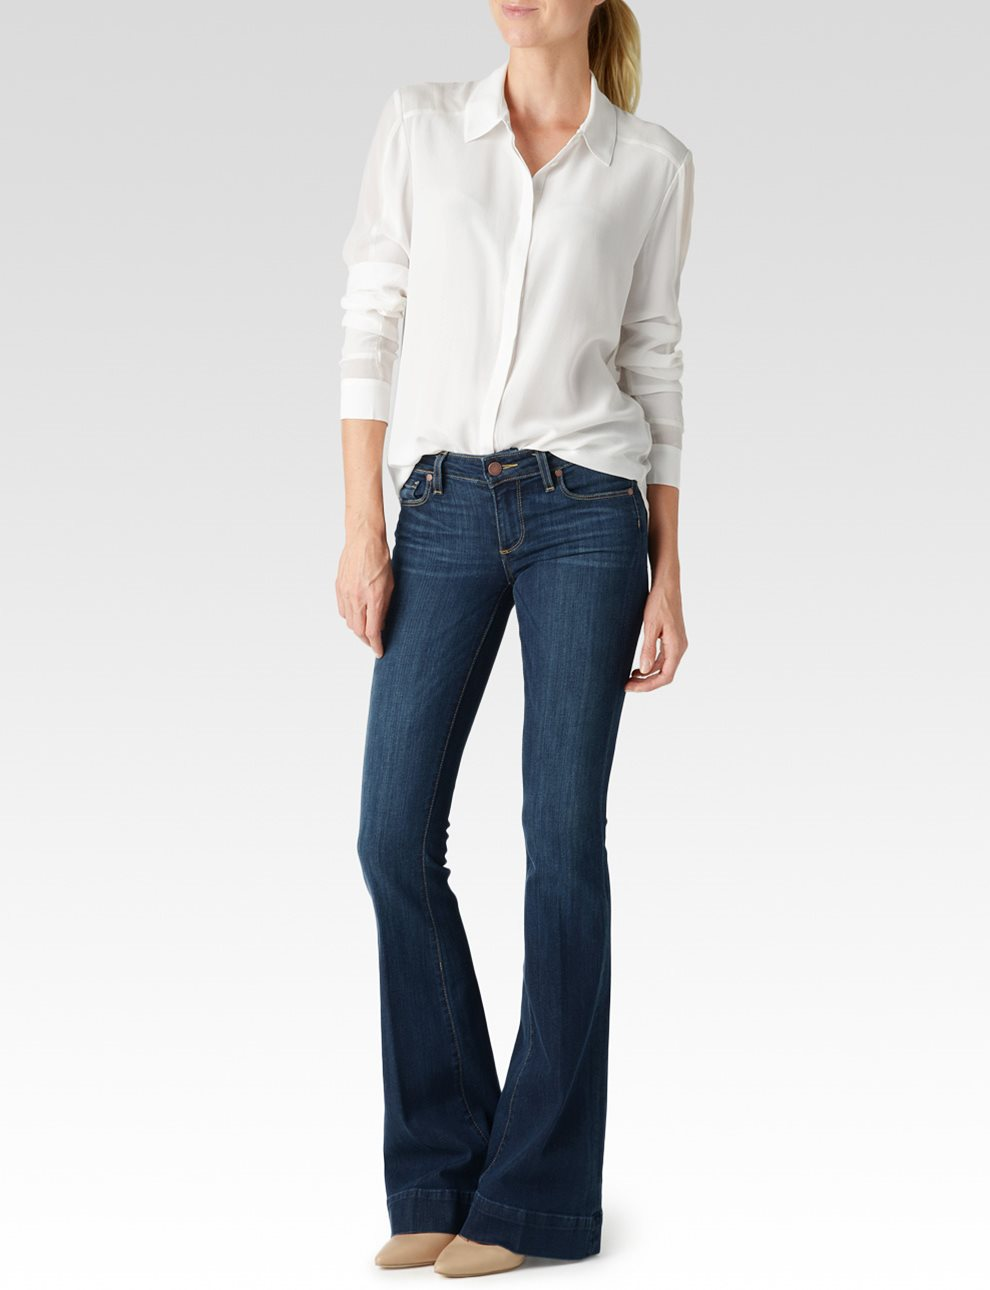 Tara Shirt - Antique White | Paige USA